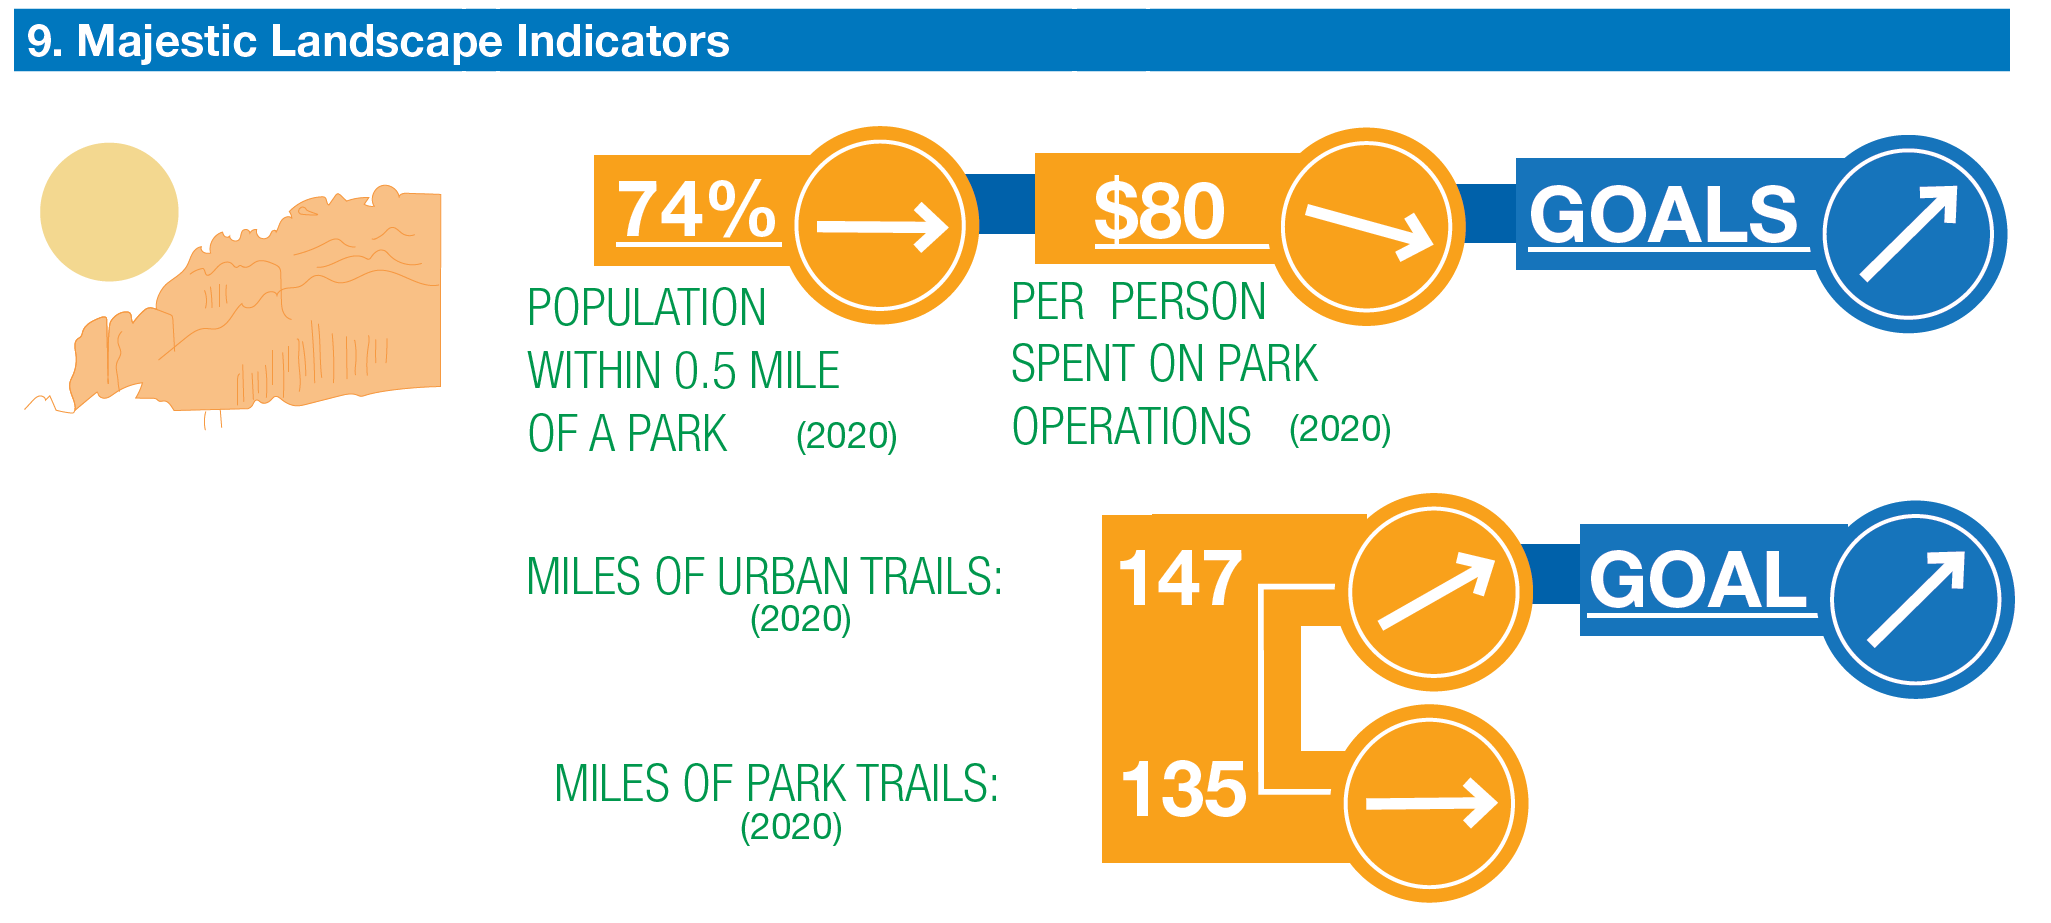 majestic landscapes population within .5 mile of park. trending same. per person spending on parks $80 trending down. miles of urban trails 147 trending up. miles of park trails 135 trending even. goals to increase